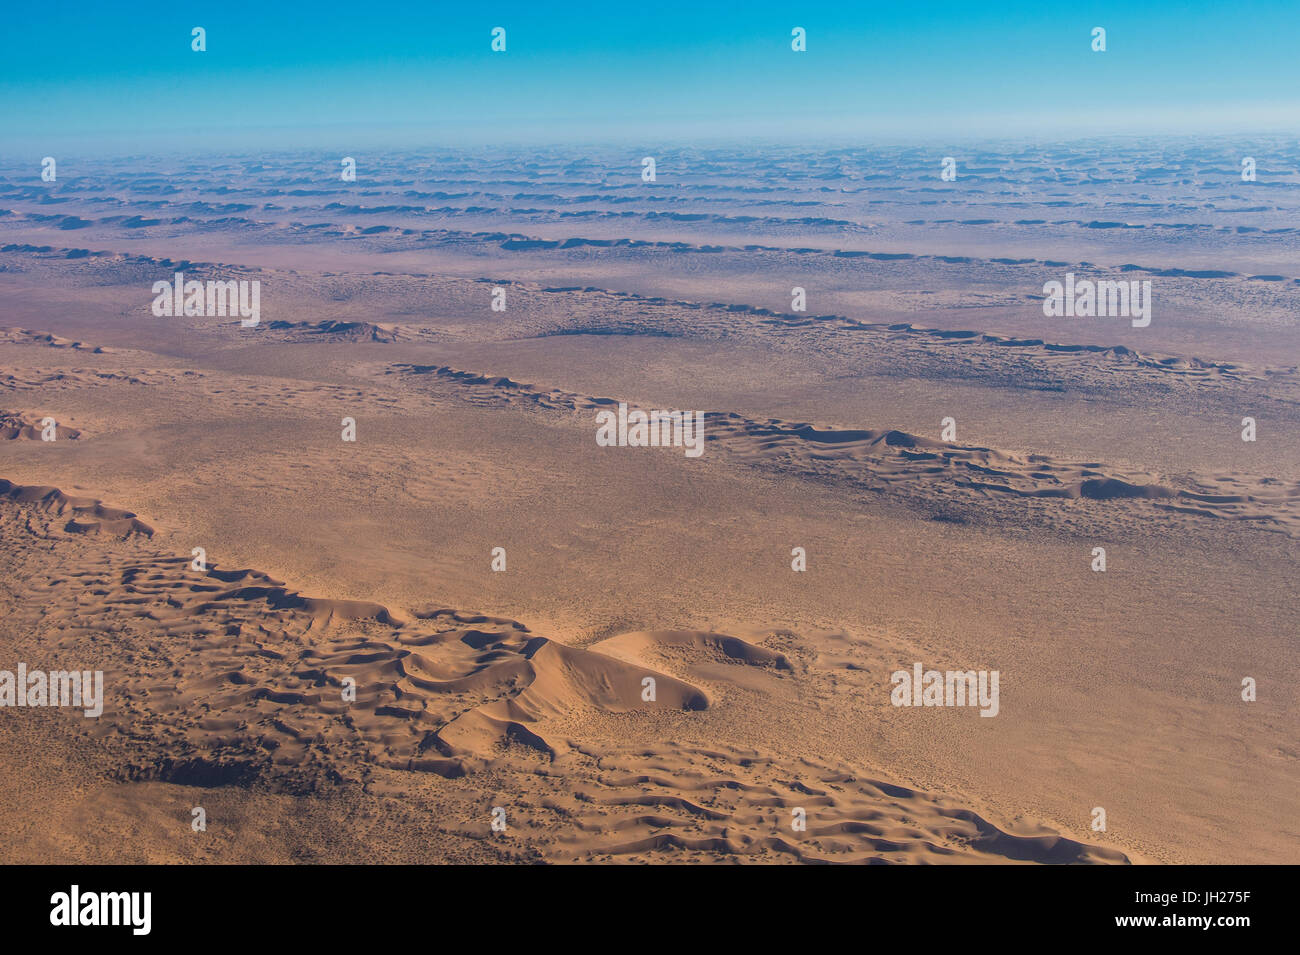 Aerial of sand dunes in the Namib desert, Namibia, Africa - Stock Image